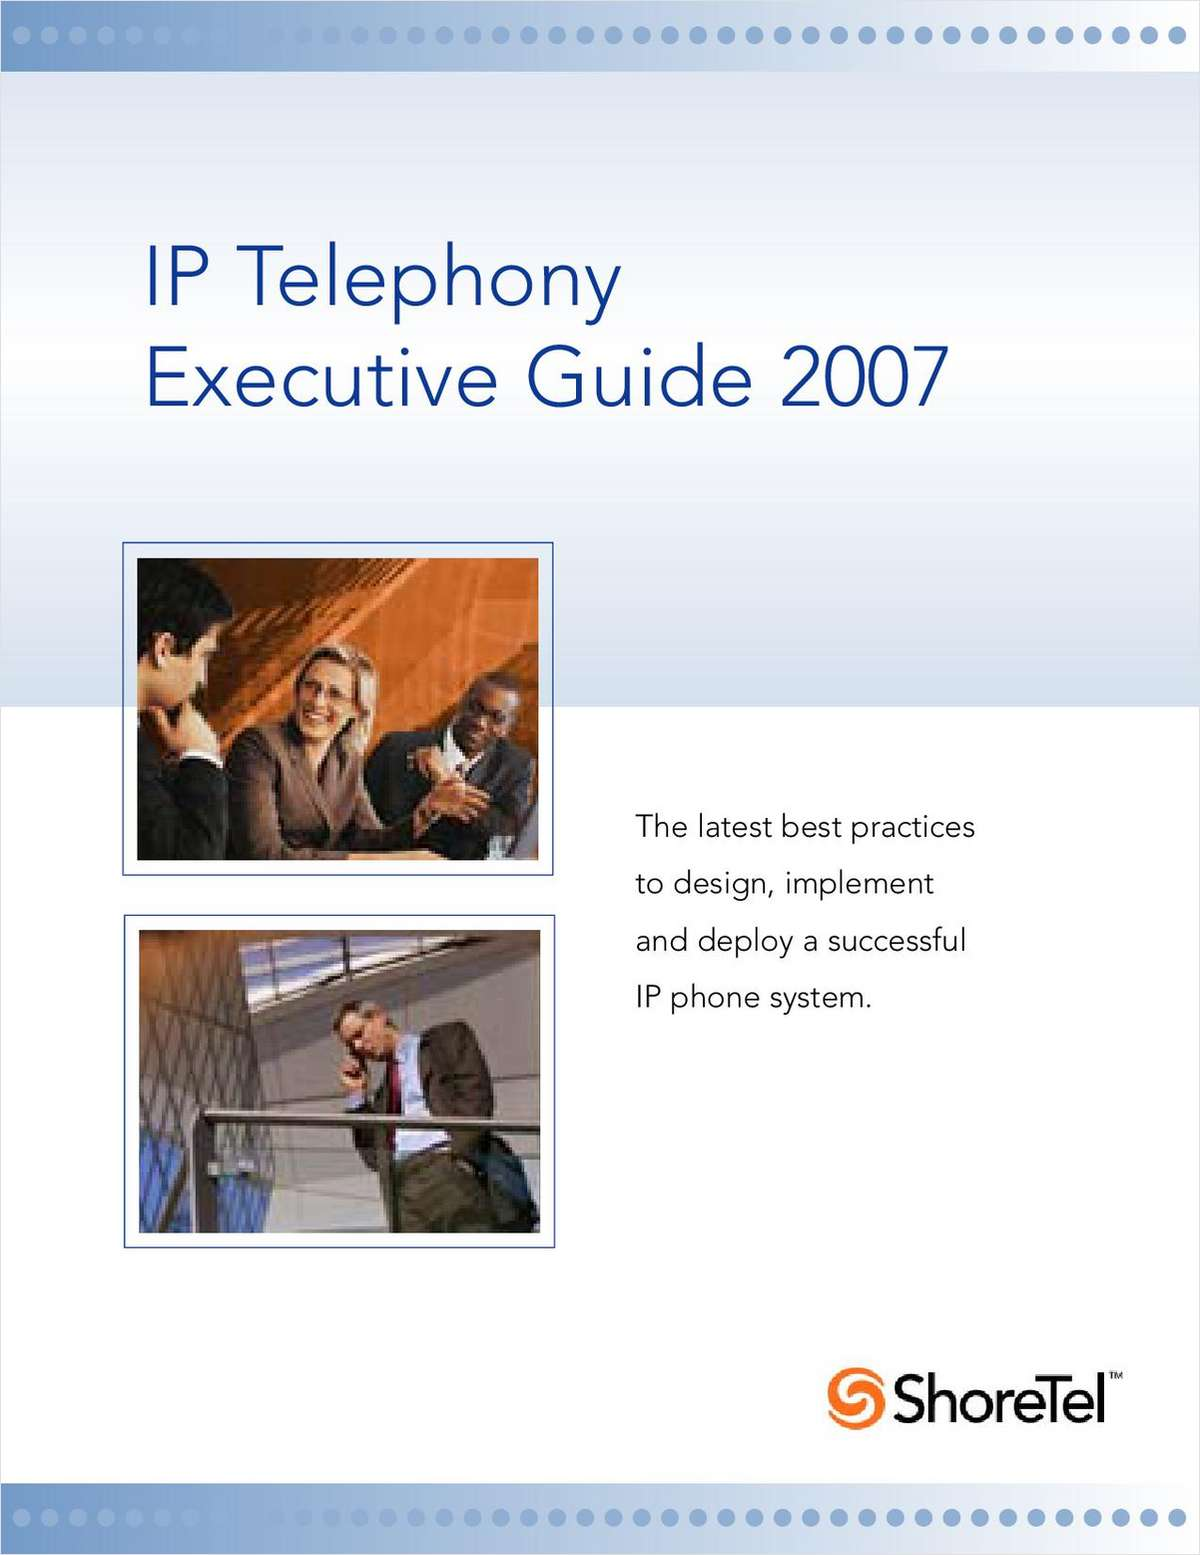 IP Telephony Executive Guide 2007